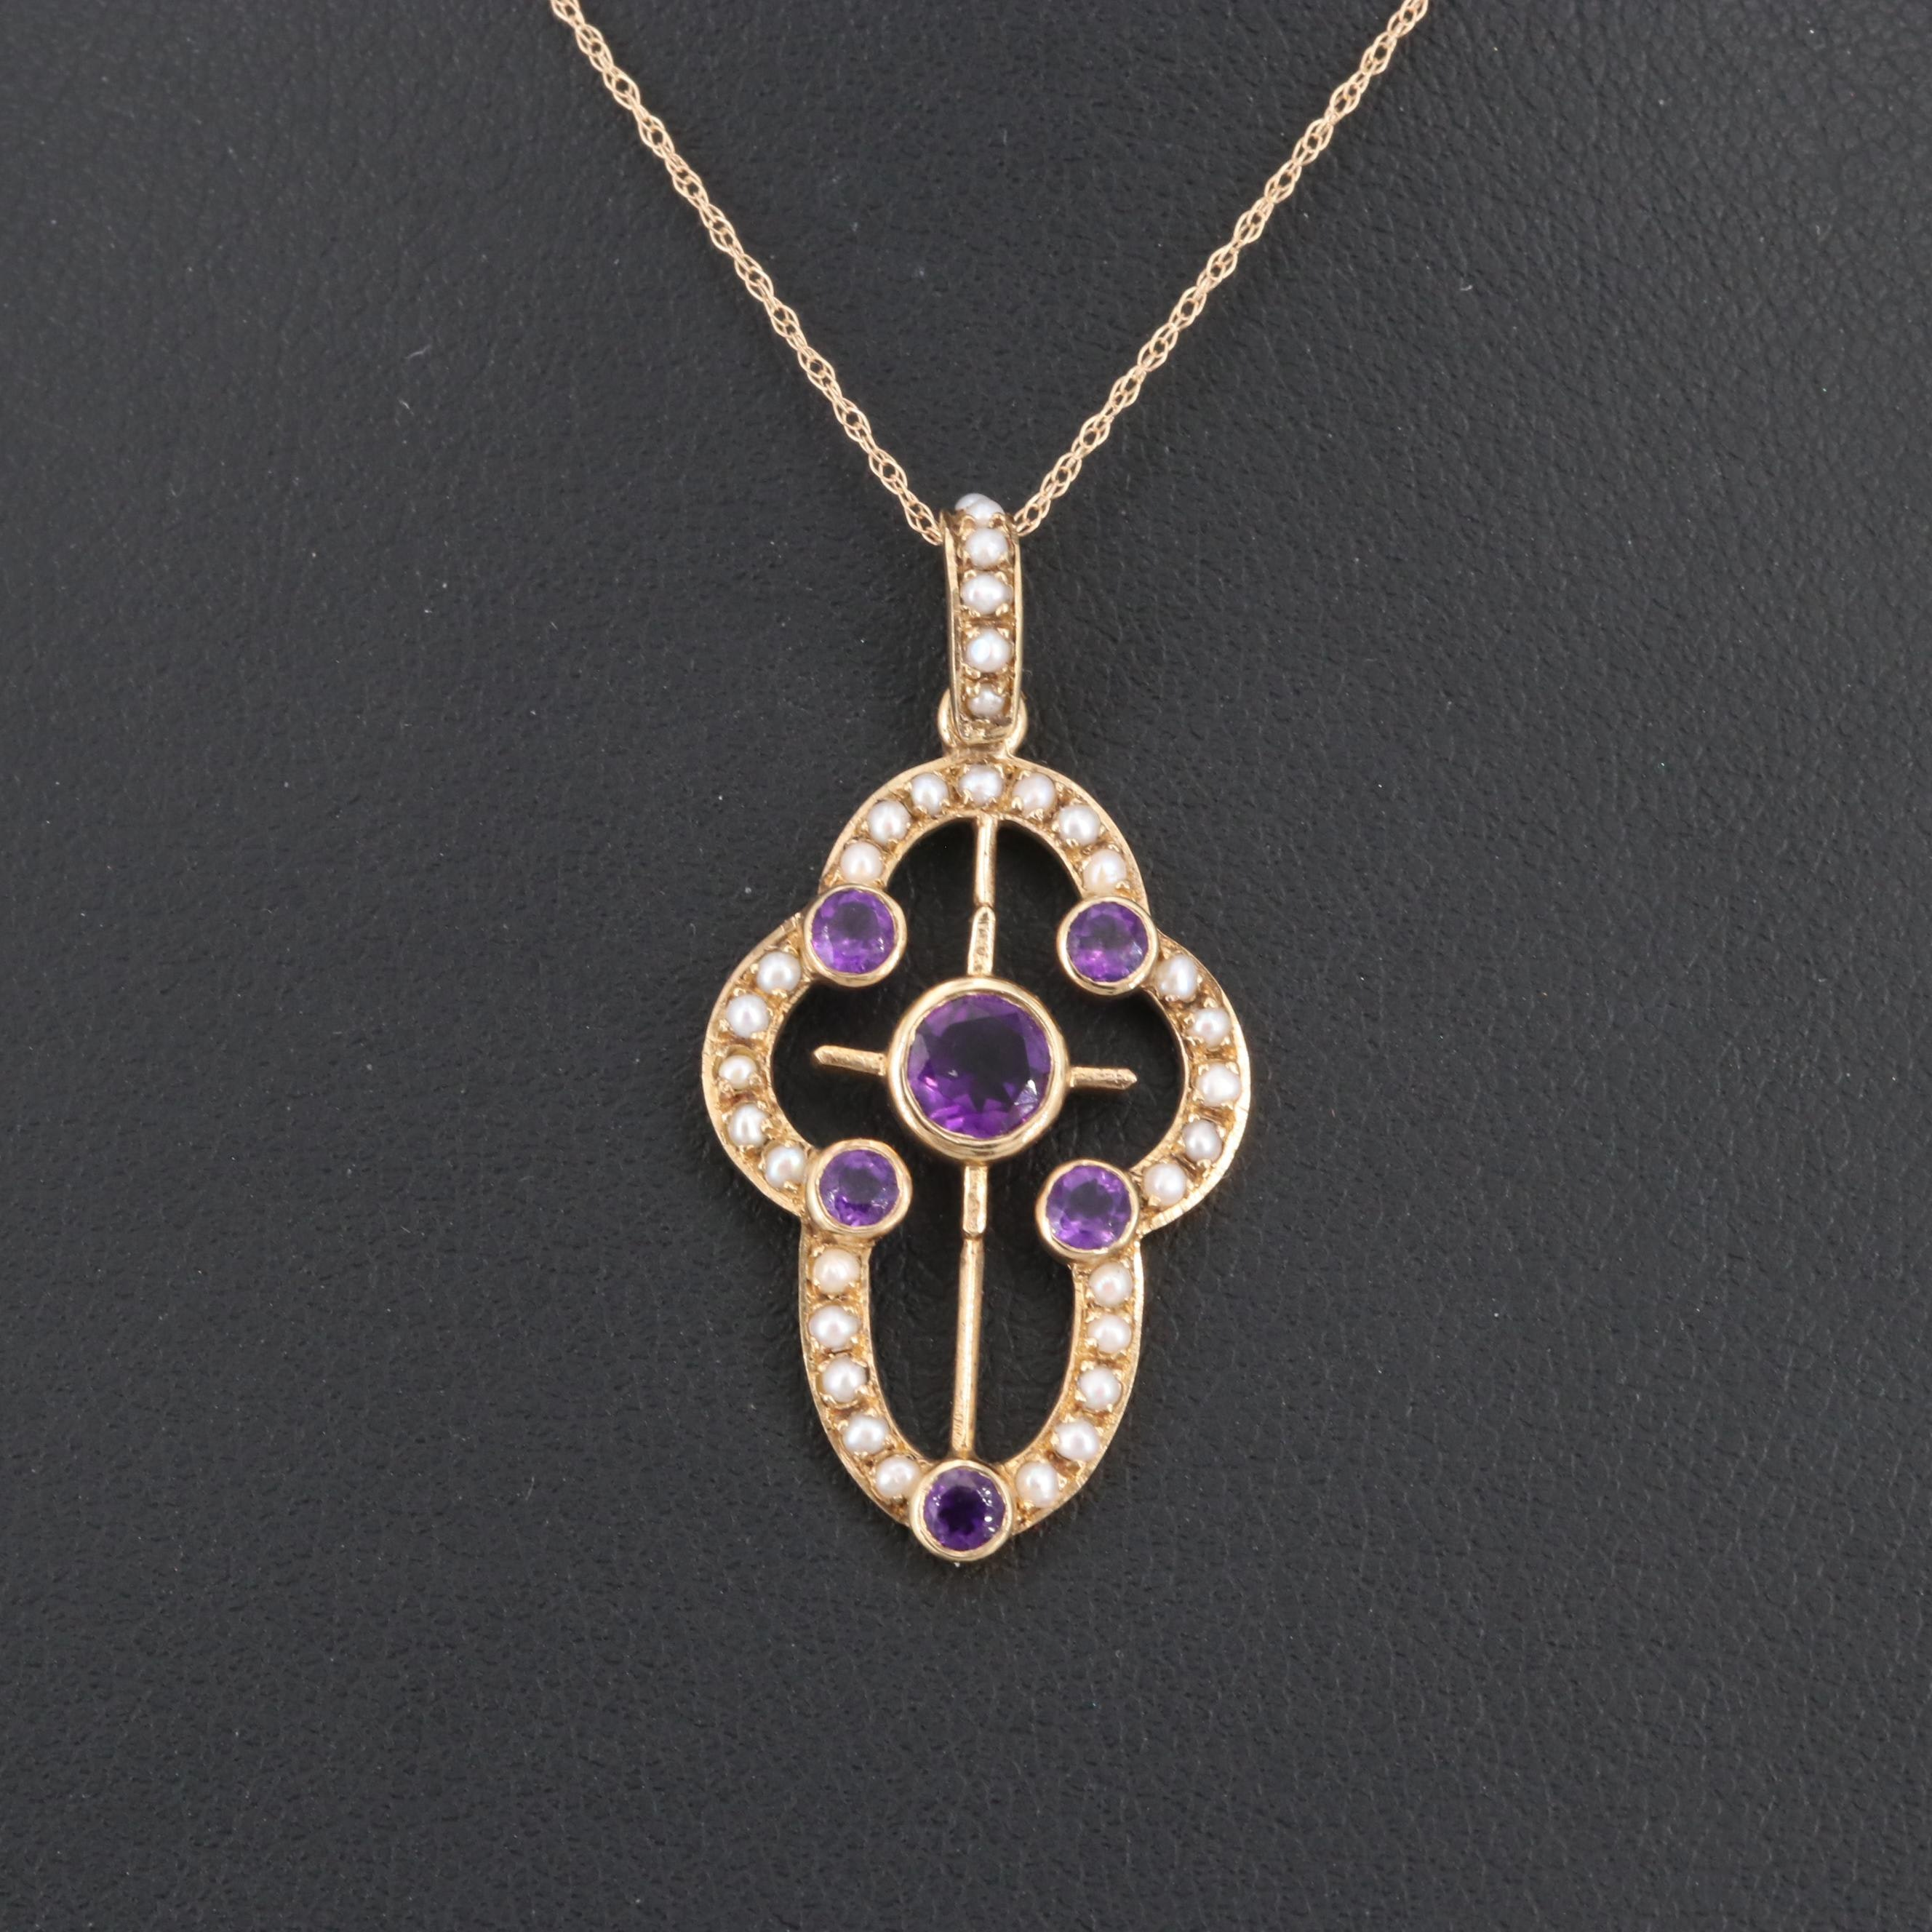 Circa 1910 14K Yellow Gold Amethyst and Seed Pearl Pendant